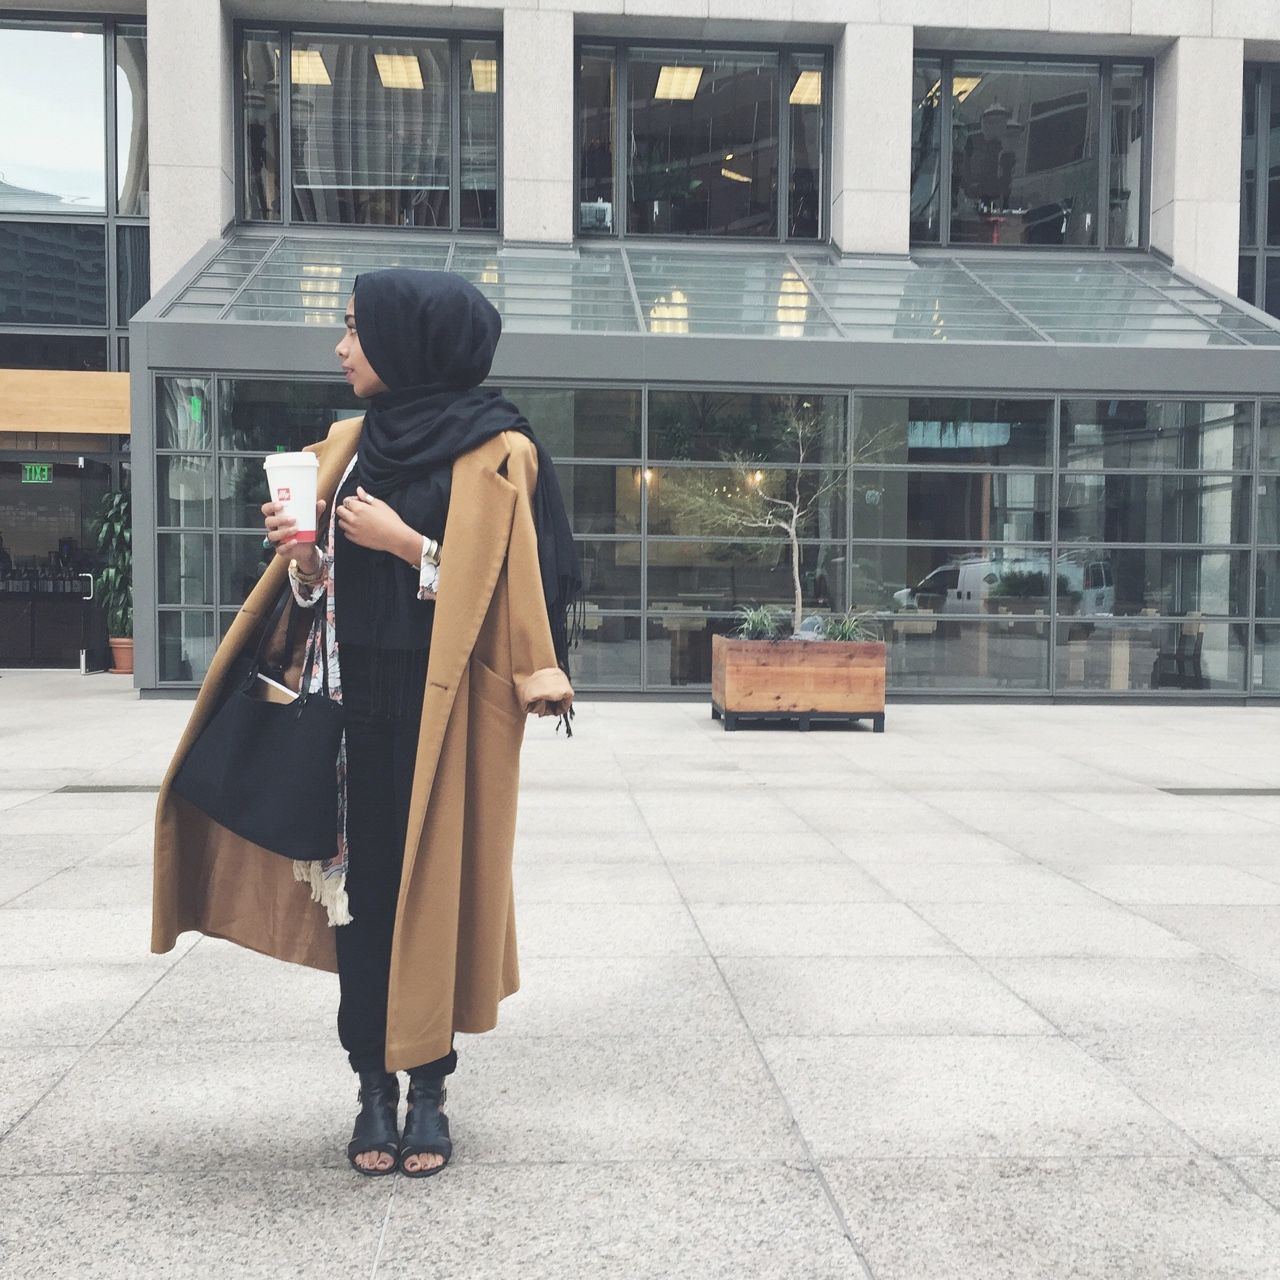 Bombhijabis U201cInstagram _mkayyy__ U201d | Hijab | Pinterest | Hijab Outfit Hijabs And Modest Fashion